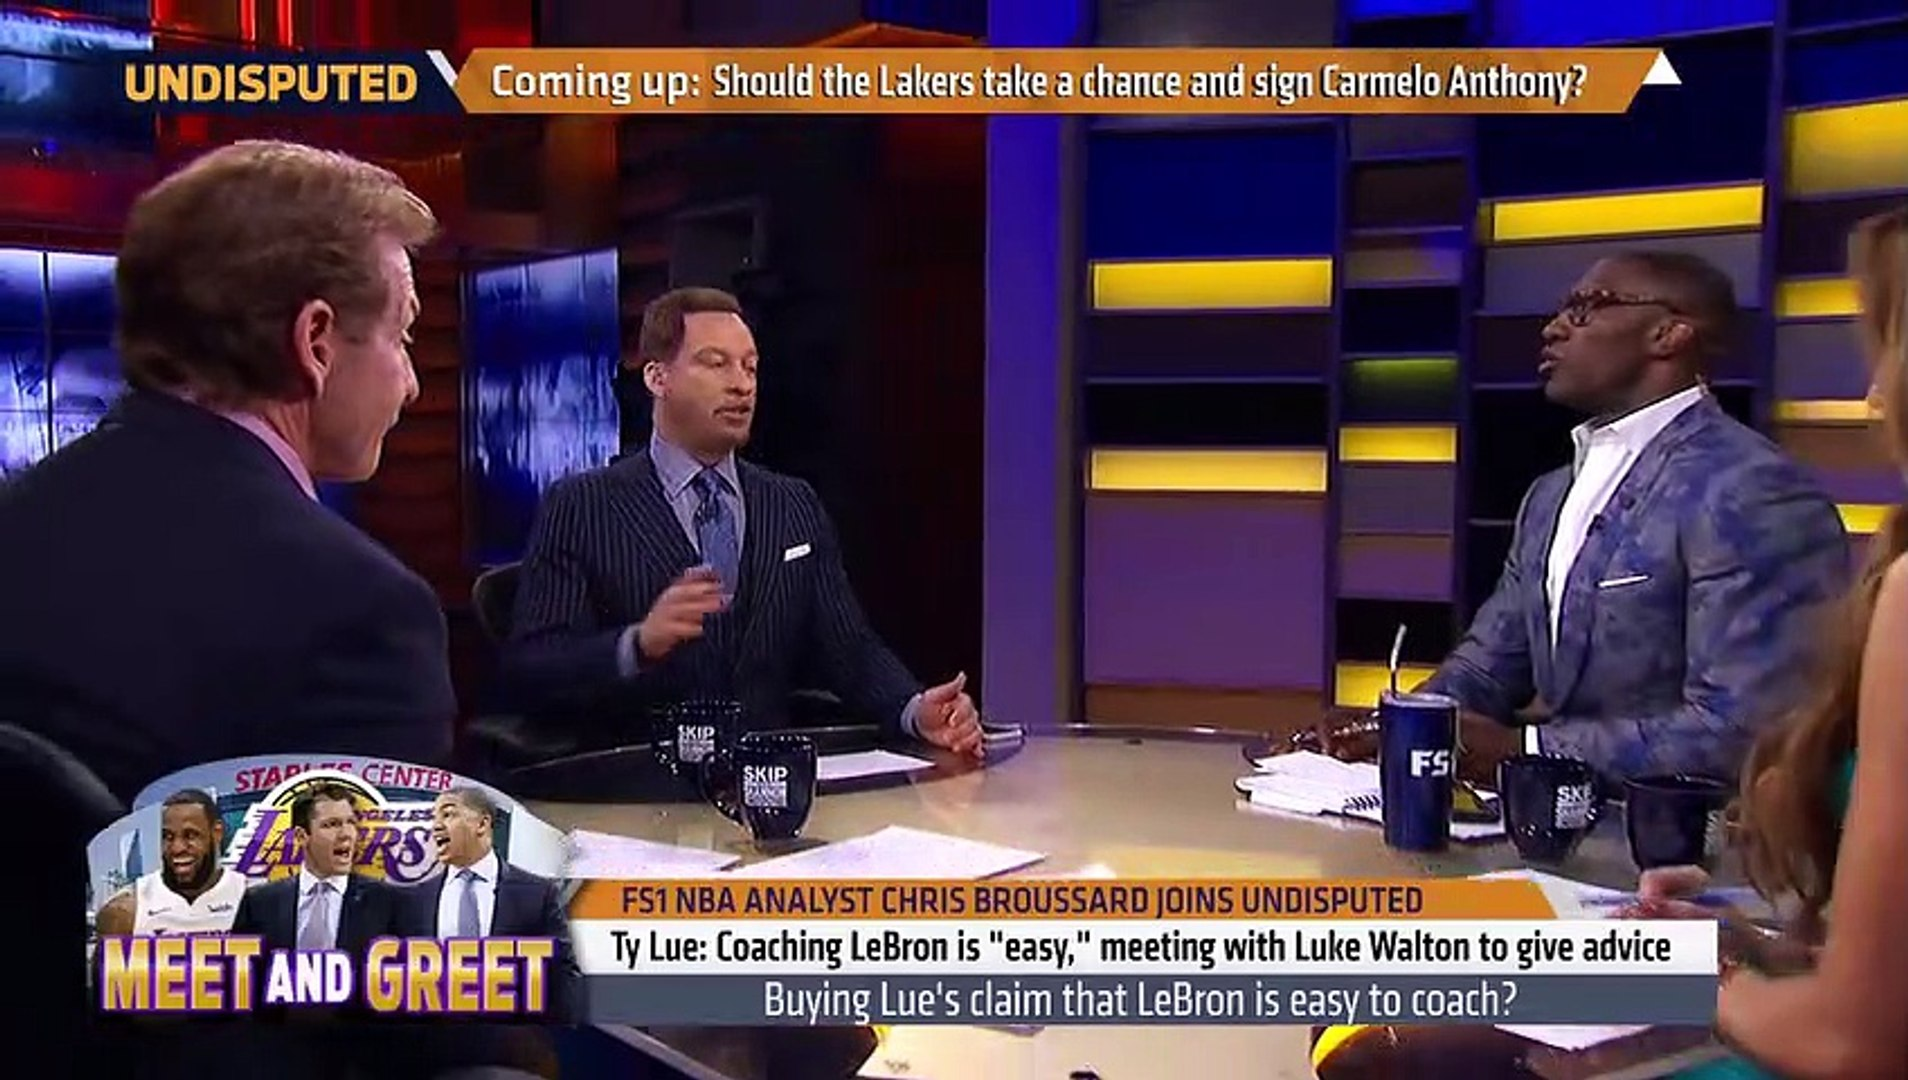 Chris Broussard on Ty Lue giving advice to Luke Walton on coaching LeBron   NBA   UNDISPUTED (2), tv